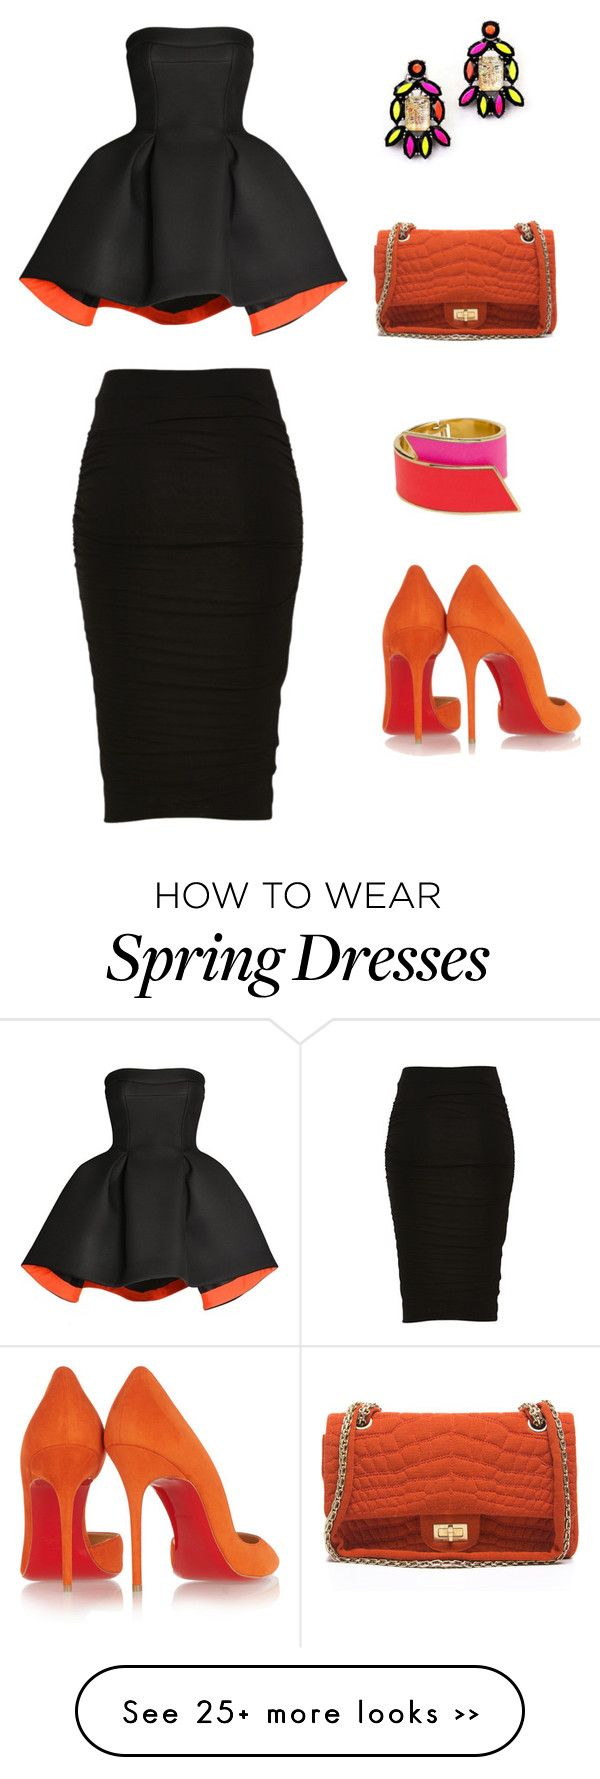 """Untitled #191"" by onellaonella on Polyvore featuring Christian Louboutin, CC SKYE, Parlor and Chanel"